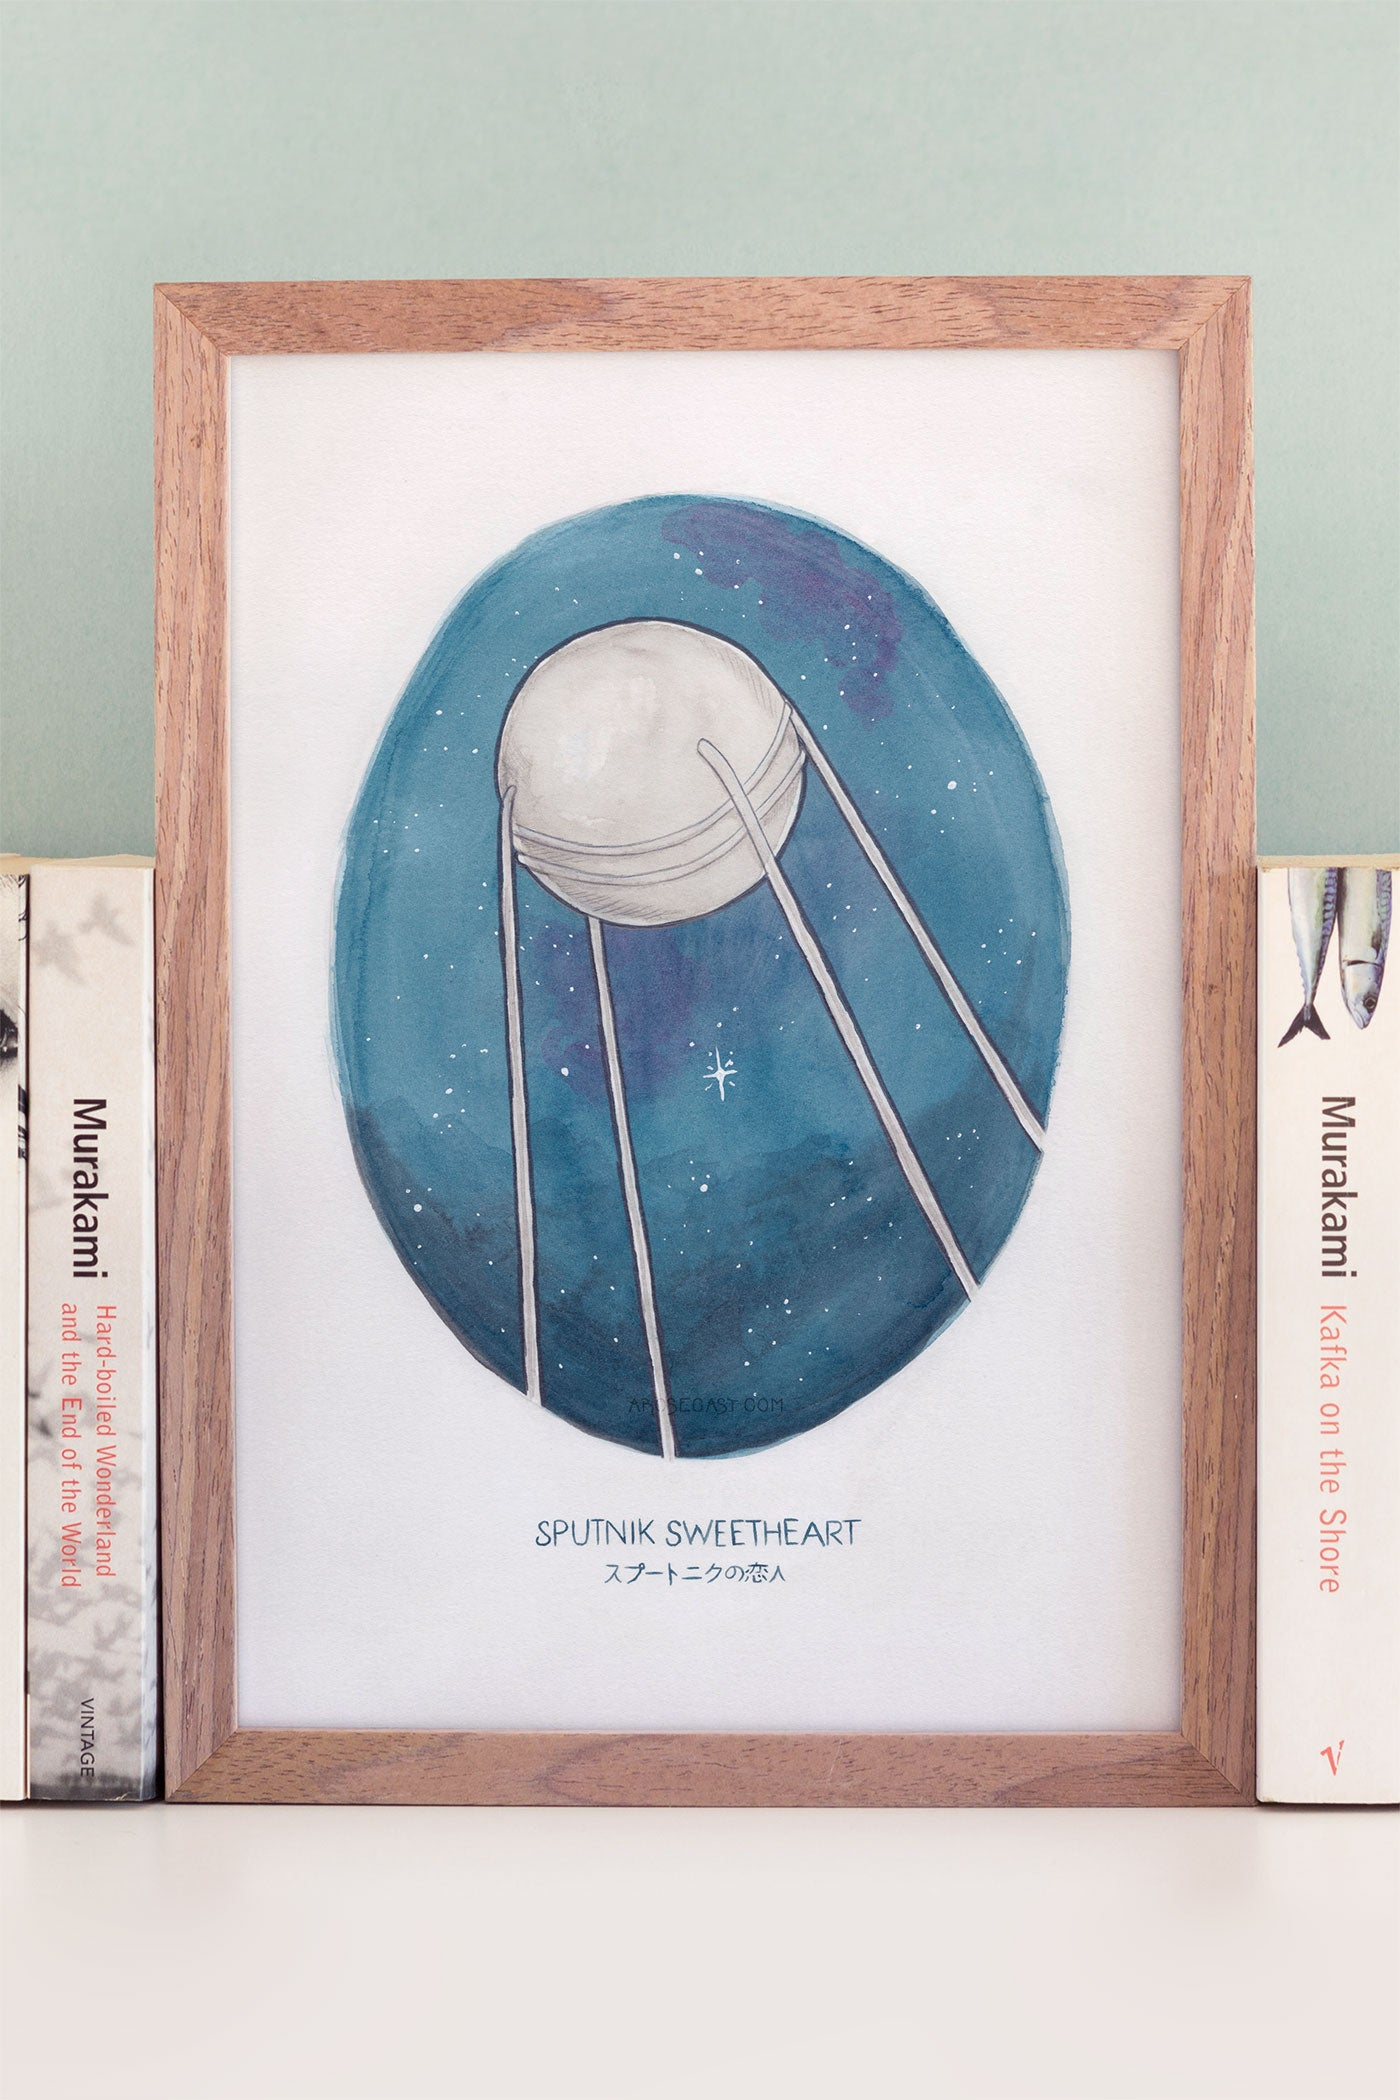 Haruki Murakami's Sputnik Sweetheart Novel Illustration Art Print - A Rose Cast